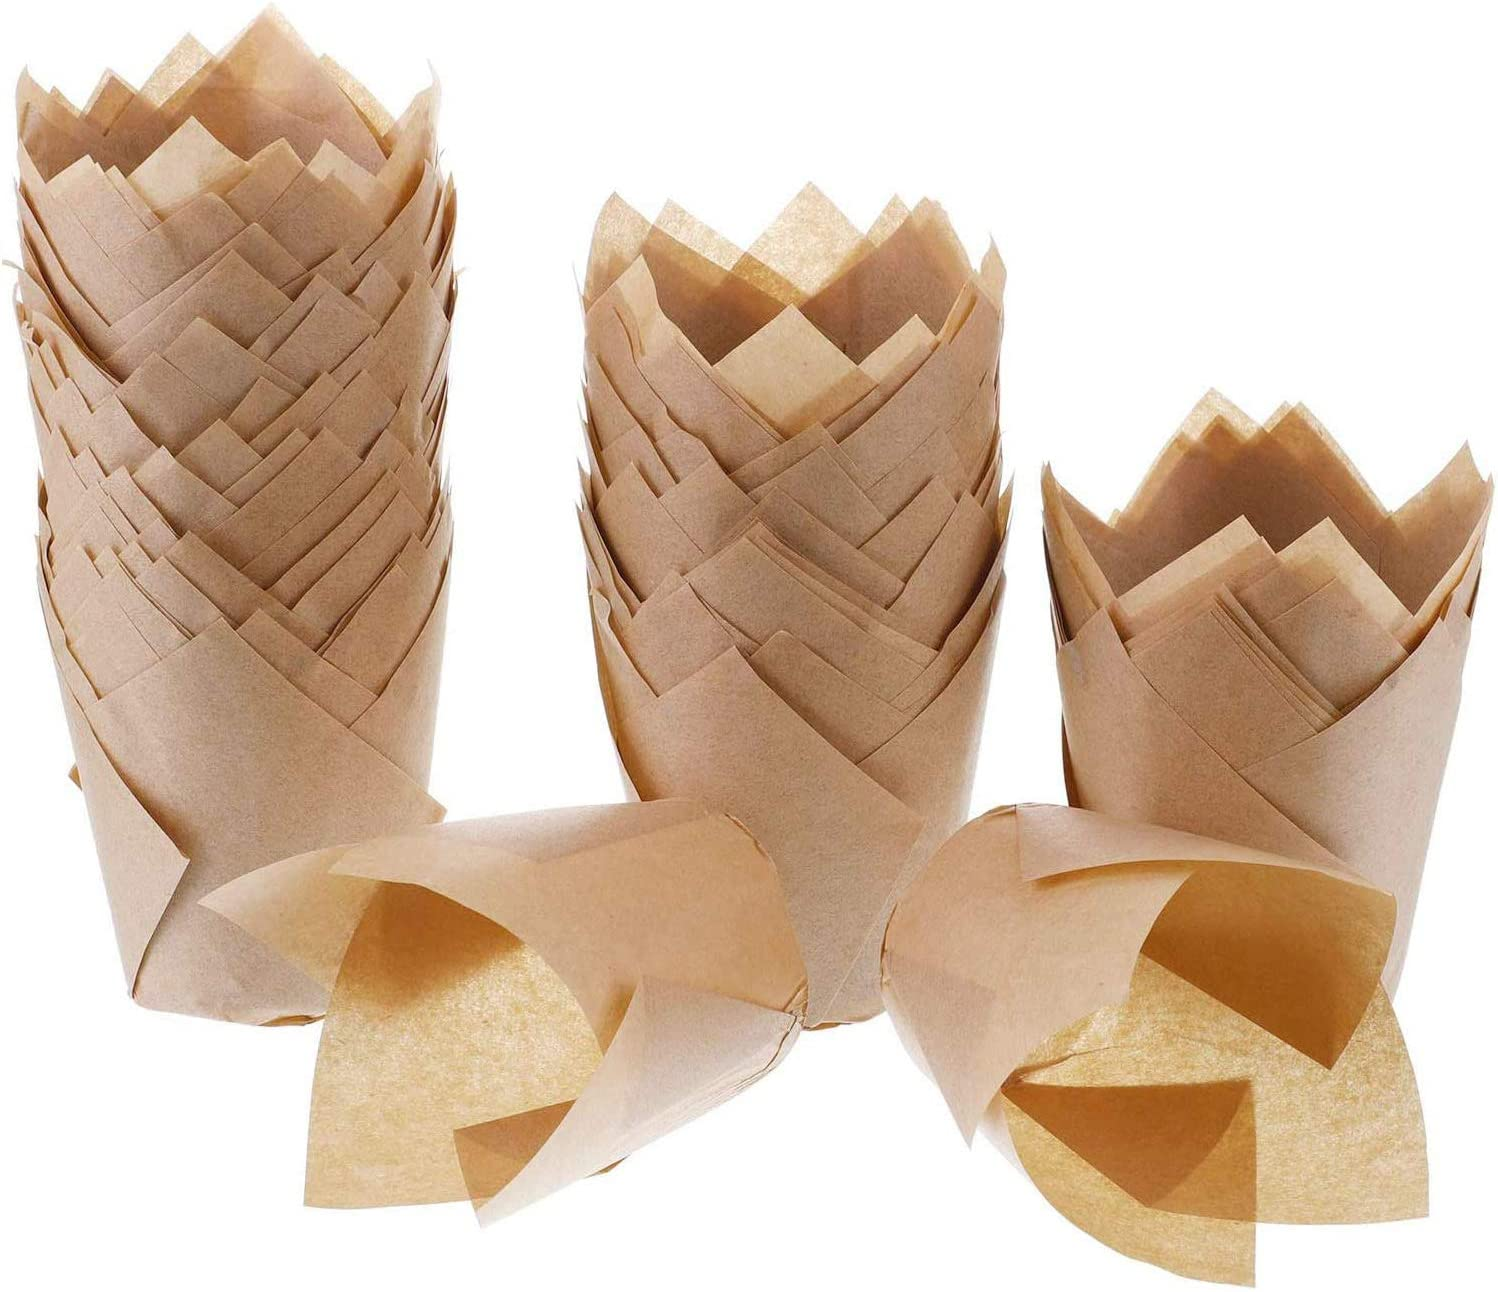 200pcs Tulip Cupcake Liners Muffin Cases Chocolate Brown Baking Paper Cups Liners Holder Grease-Proof Wrappers for Wedding Birthday Party Baby Shower (Natural)